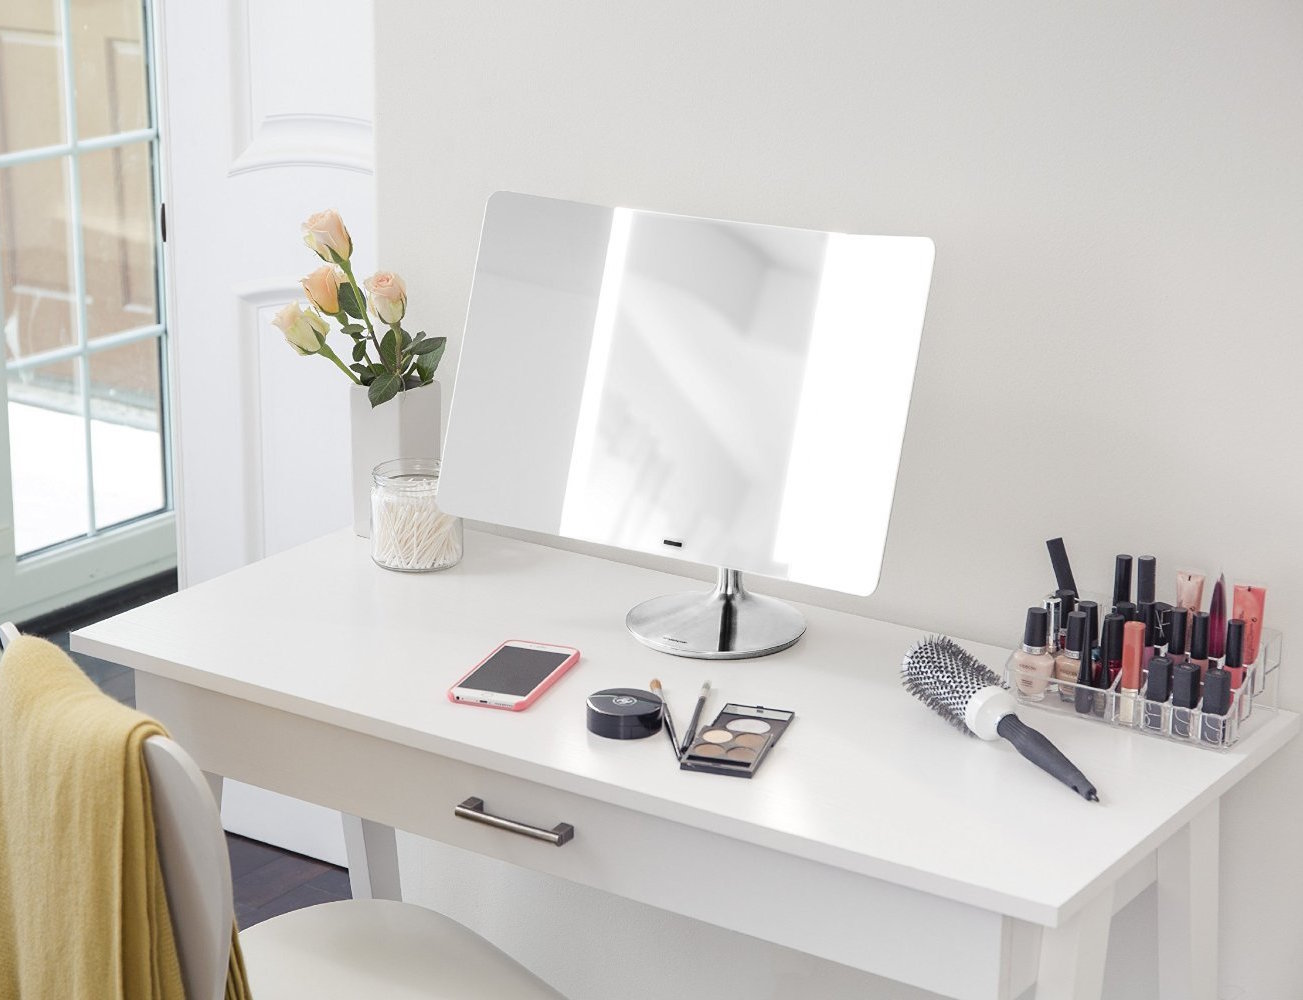 Wide View Sensor Mirror By Simplehuman